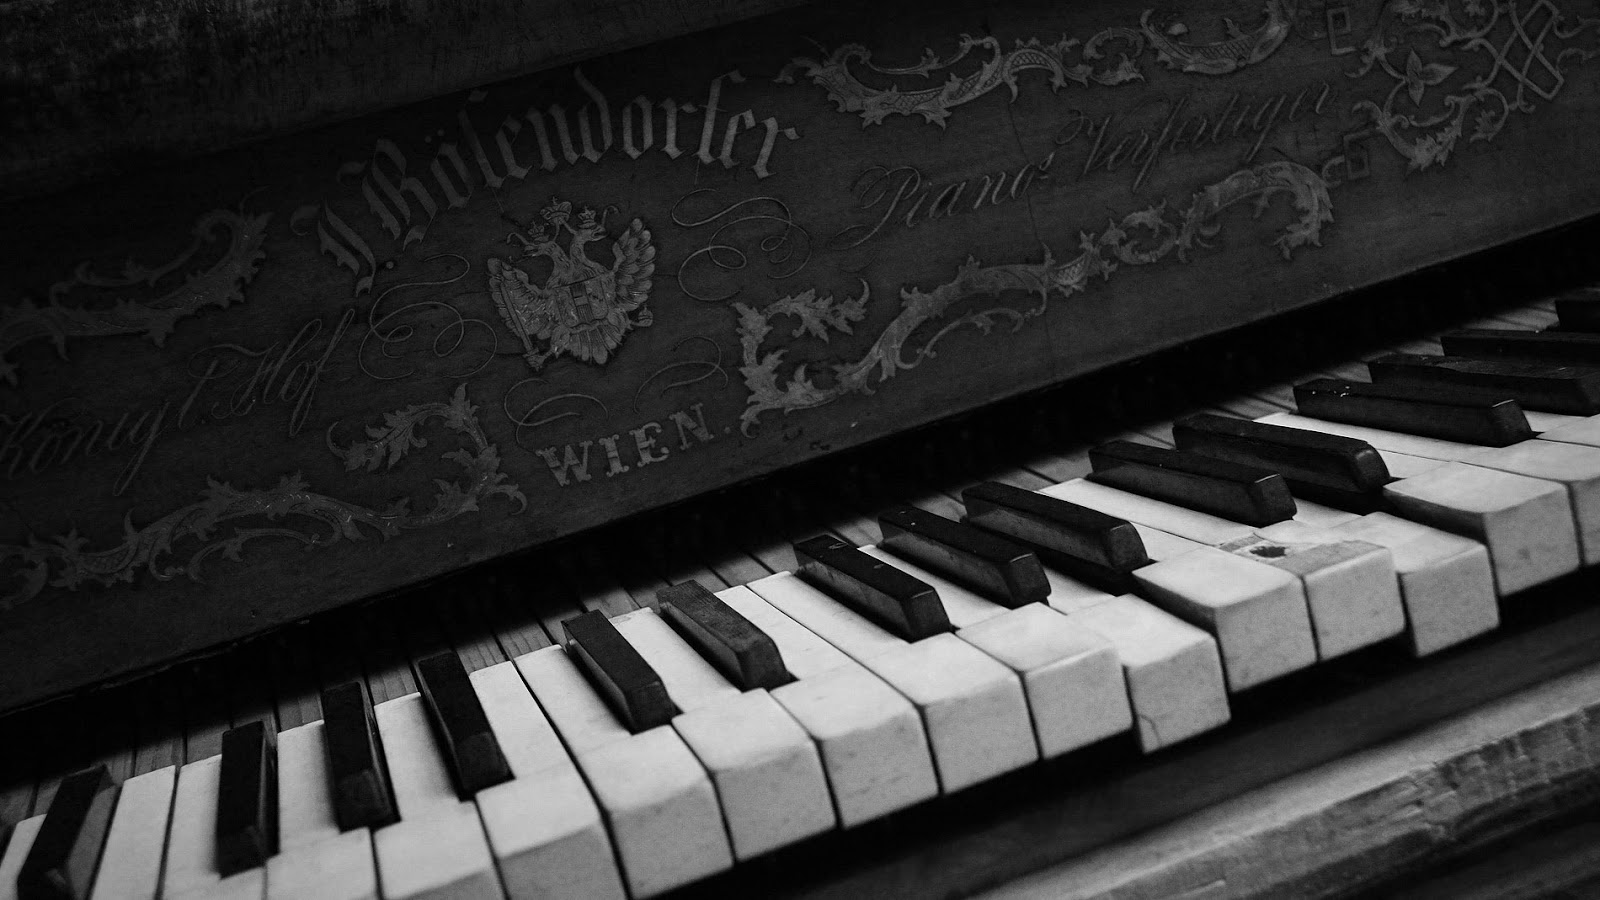 Free Download And Piano Hd Wallpapers Download Musical Instruments Fine Hd 1600x900 For Your Desktop Mobile Tablet Explore 46 Piano Hd Wallpapers Piano Keys Wallpaper Grand Piano Wallpaper Piano Background Wallpaper